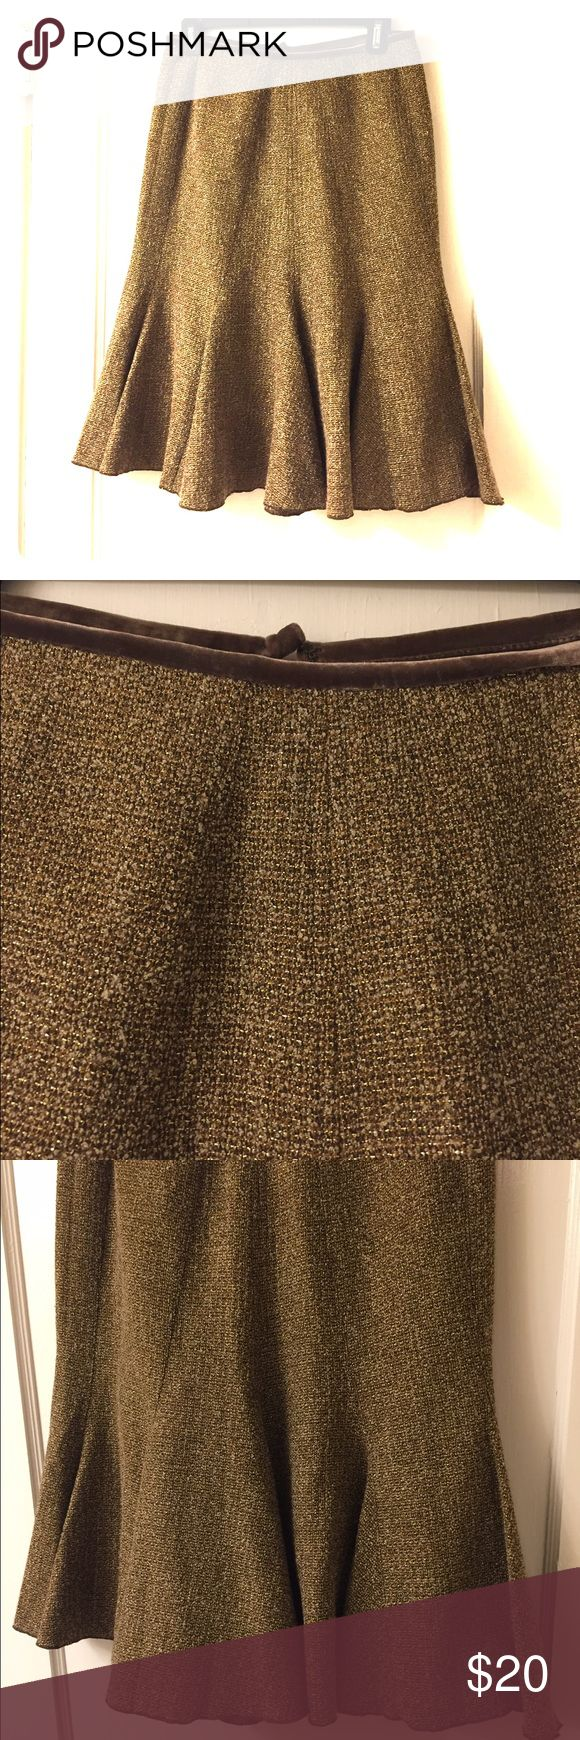 Nine West wool mix pleated skirt ~ Size 2 Nine West wool mix pleated skirt with slight tulip flair. Tan/brown mix with gold thread mixed in. Velvet detail at waist. Pretty and warm for fall/winter. Falls slightly below knee. Excellent condition. Size 2z Nine West Skirts Midi